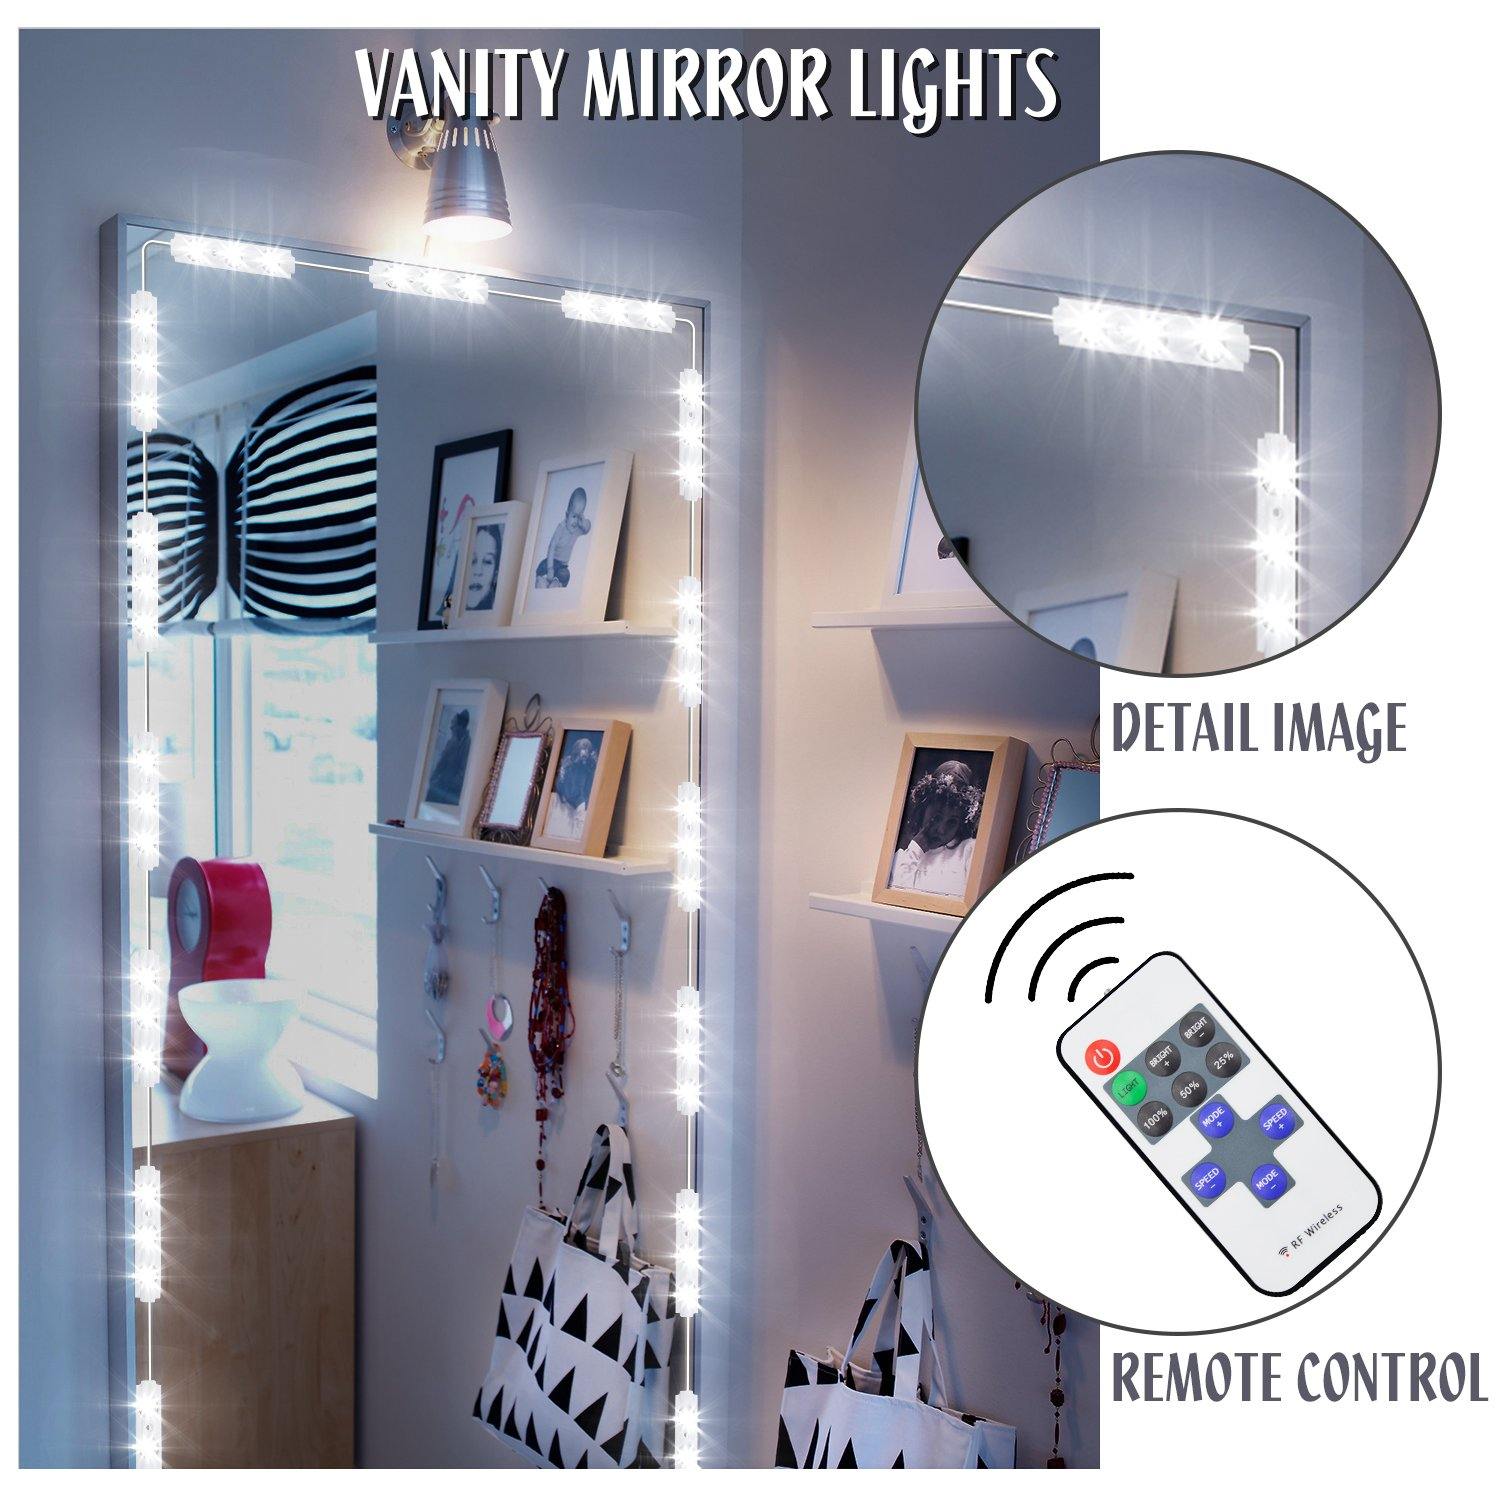 Vanity light, Makeup Mirror Light TaoTens Bathroom Vanity Light Kit, DIY Mirror Light Kit for Cosmetic Hollywood Make Up Mirror with Remote Control 10FT 60LED- 6000K, White(Mirror Not Included)